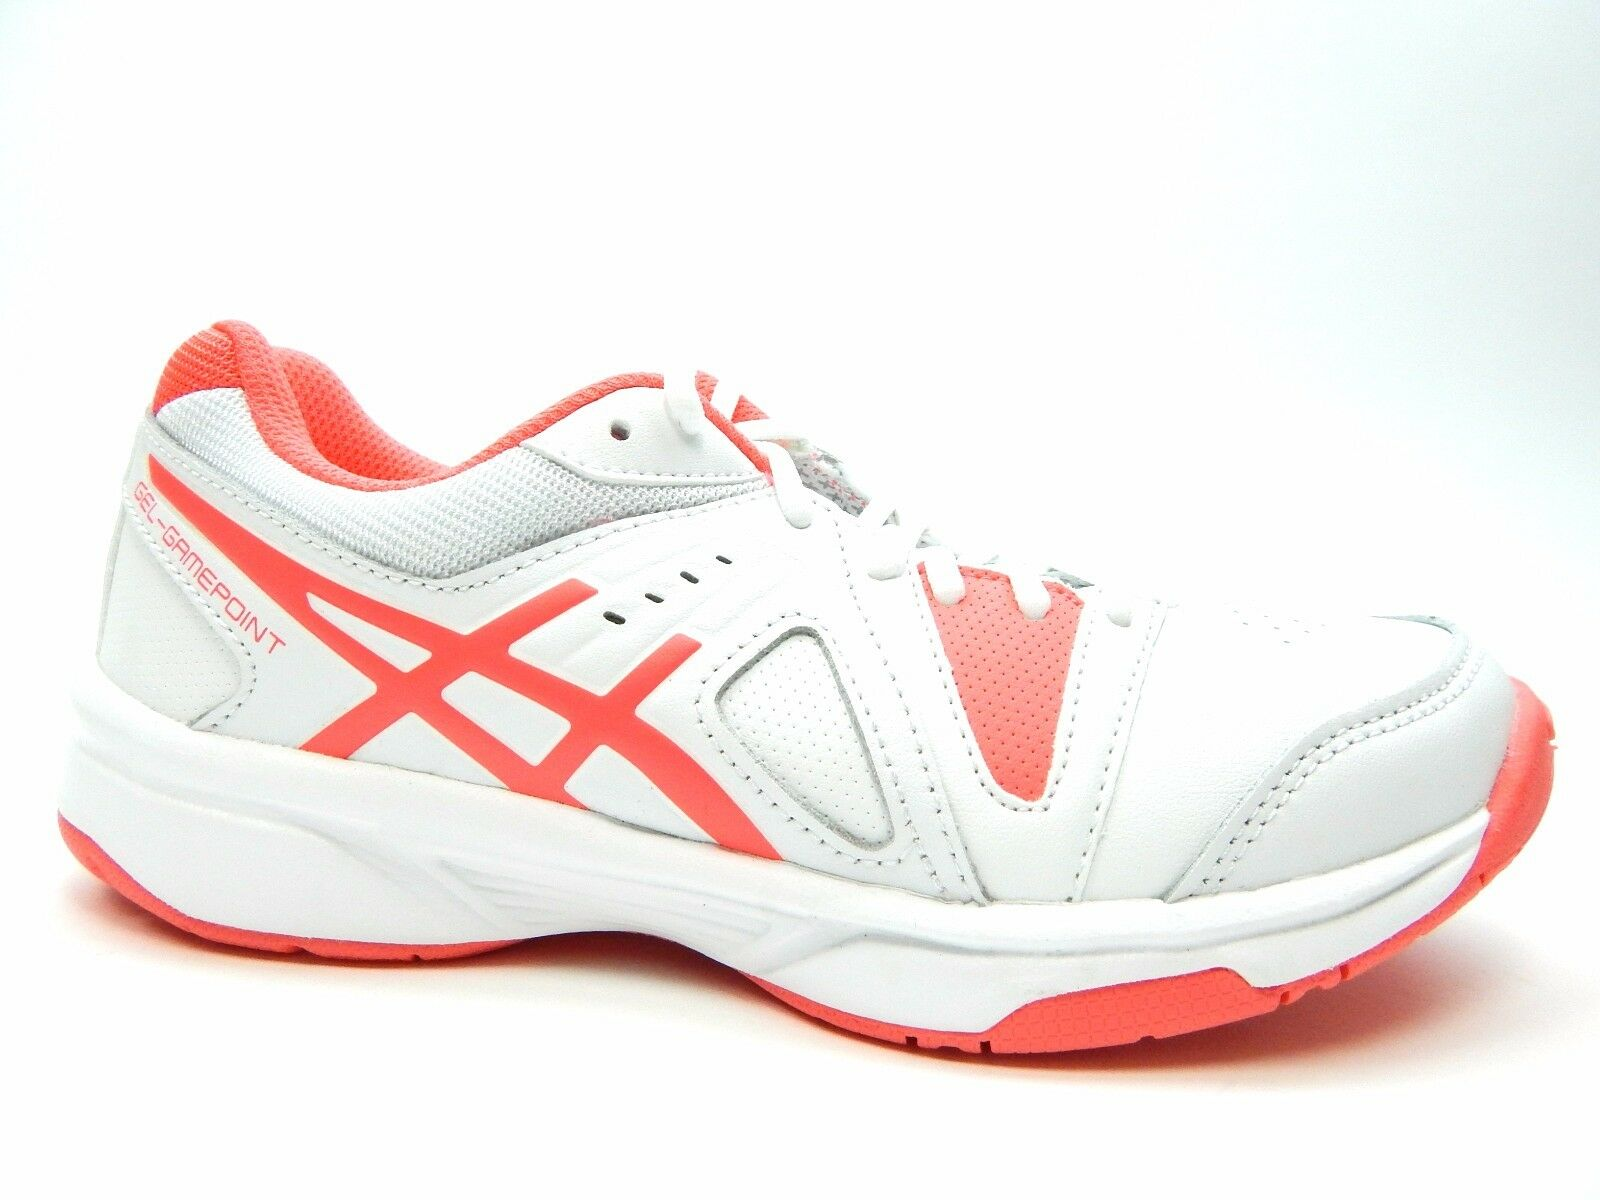 1 asics gel gamepoint tennis shoe